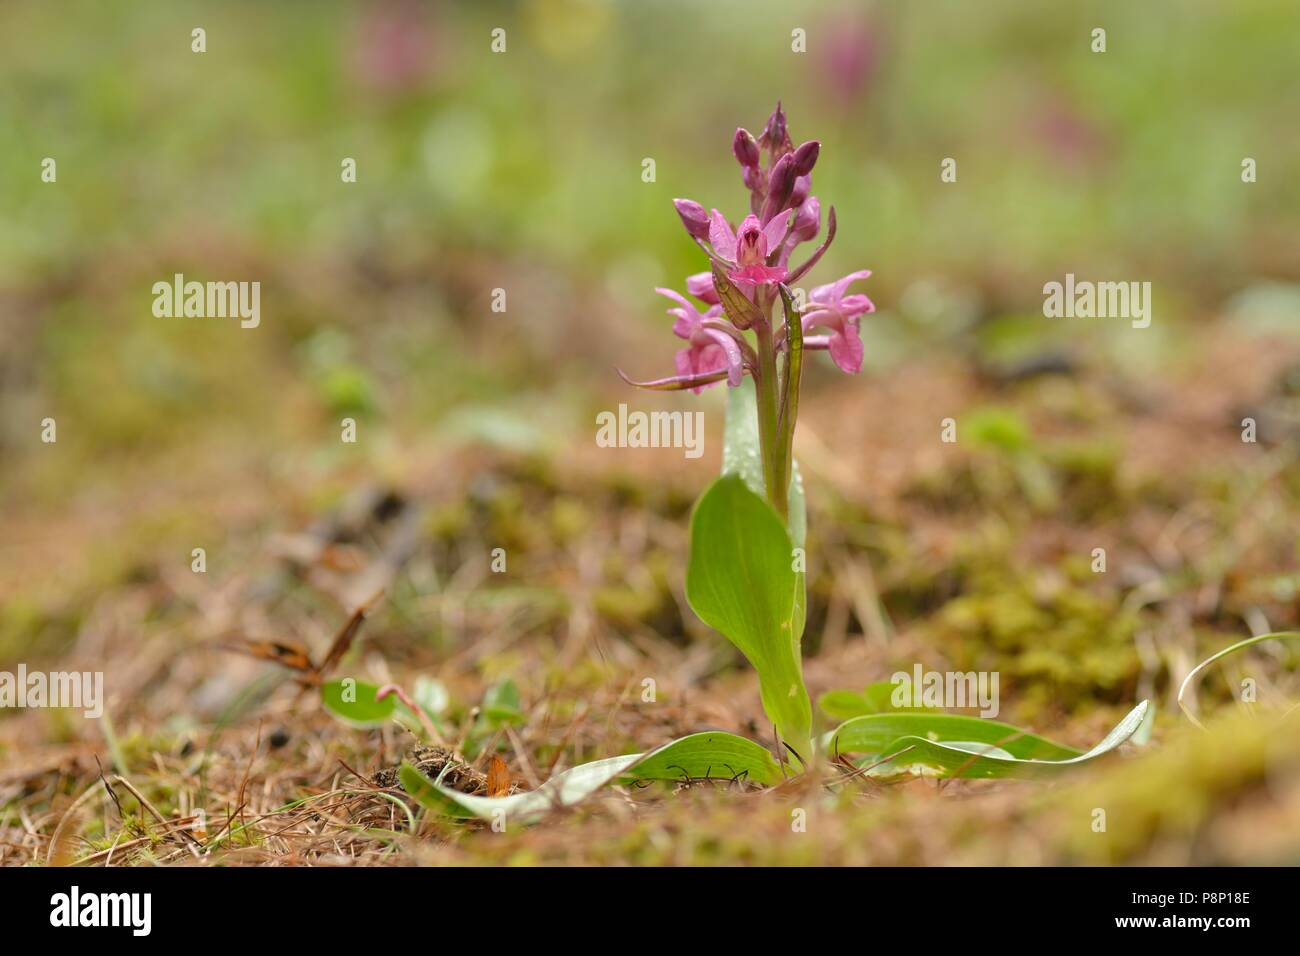 Flowering Elder-flowered Orchid, one of the few species which has two different colored flowers between all populations - Stock Image